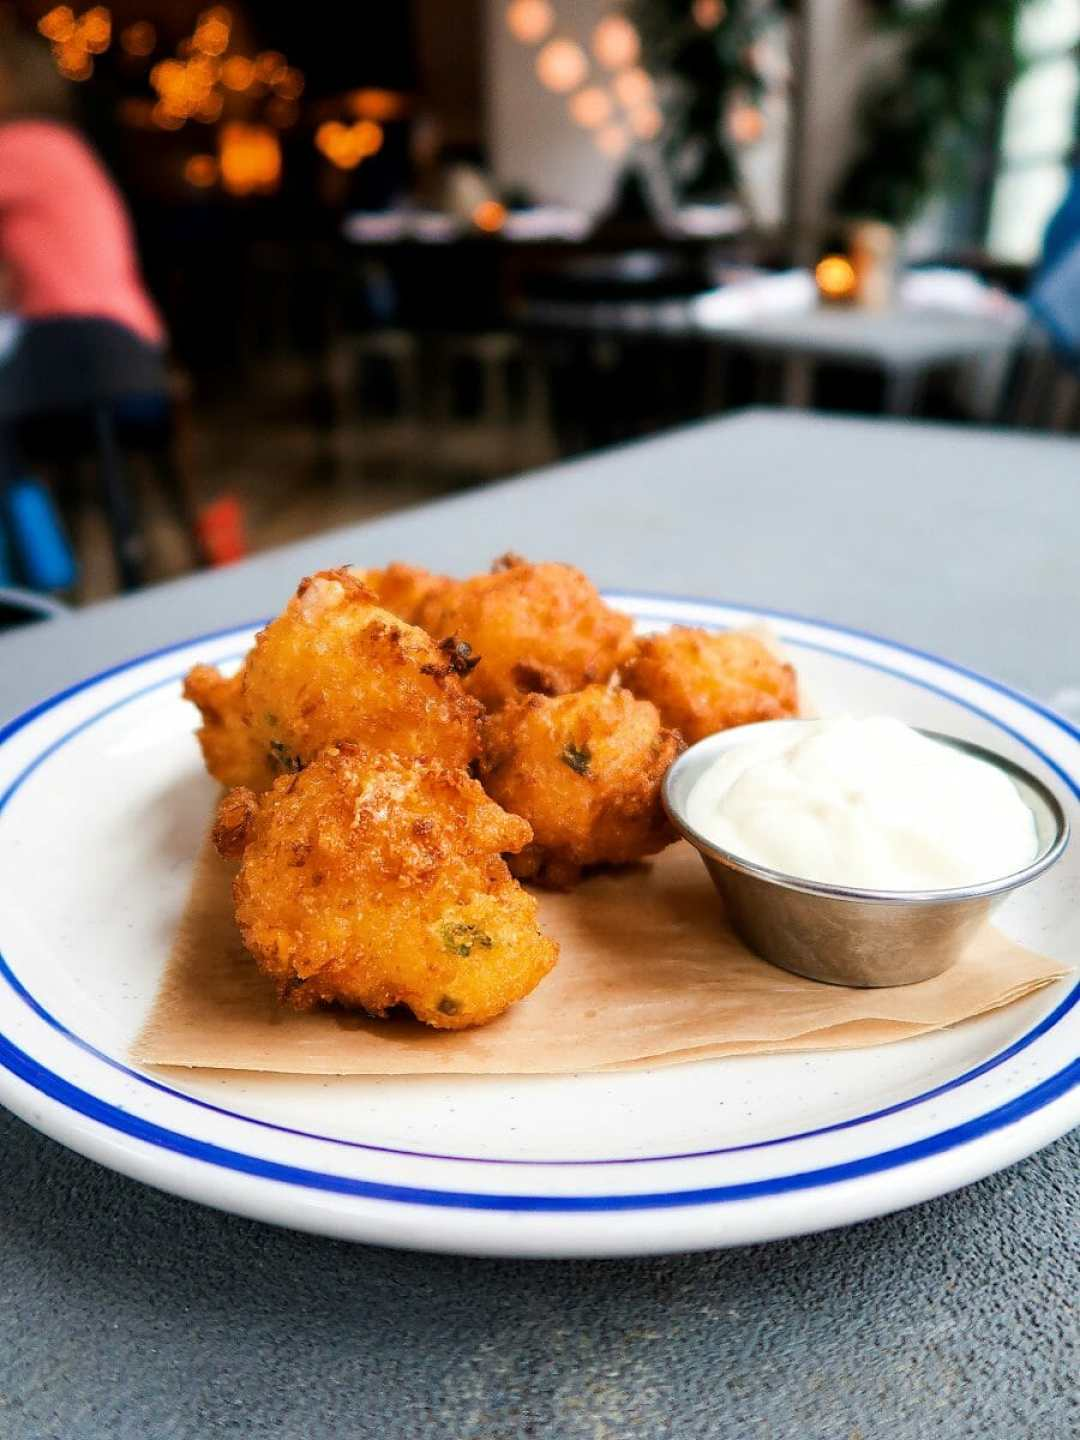 Lump Crab Hush Puppies at Porch Kitchen and Bar, Downtown Louisville, KY